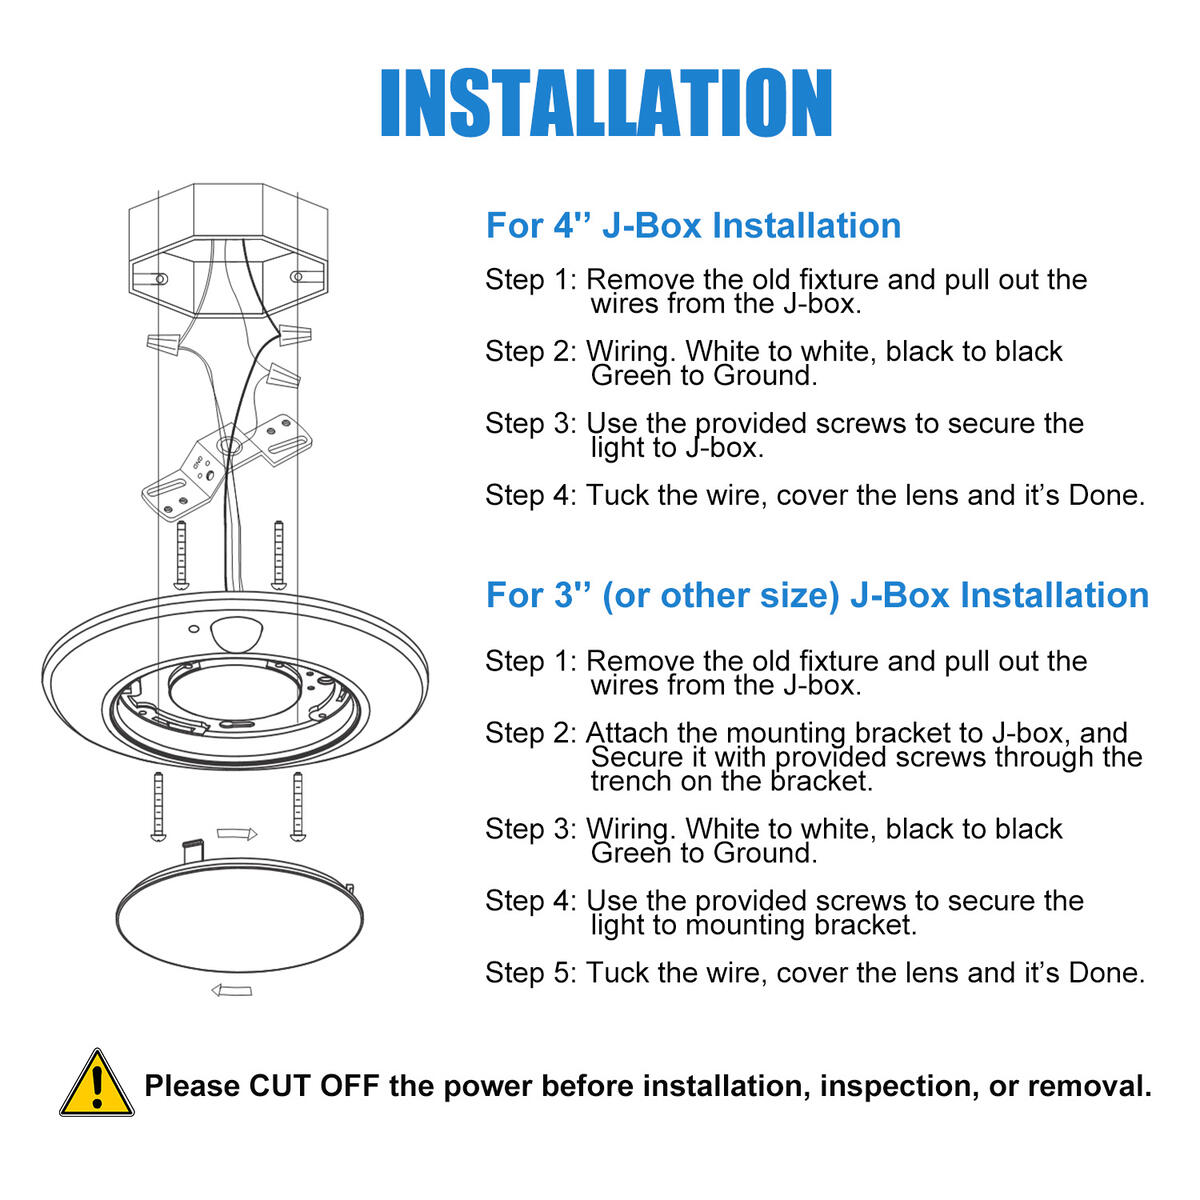 Guarantled Closet Motion Sensor Light Indoor, 6-7/8 Inch LED, 10W=60W 3000K/4000K/5000K in 1, Bronze Motion Sensor Activated Ceiling Light, Install to J-Box, No Battery, for Closet,Pantry, Damp Rated